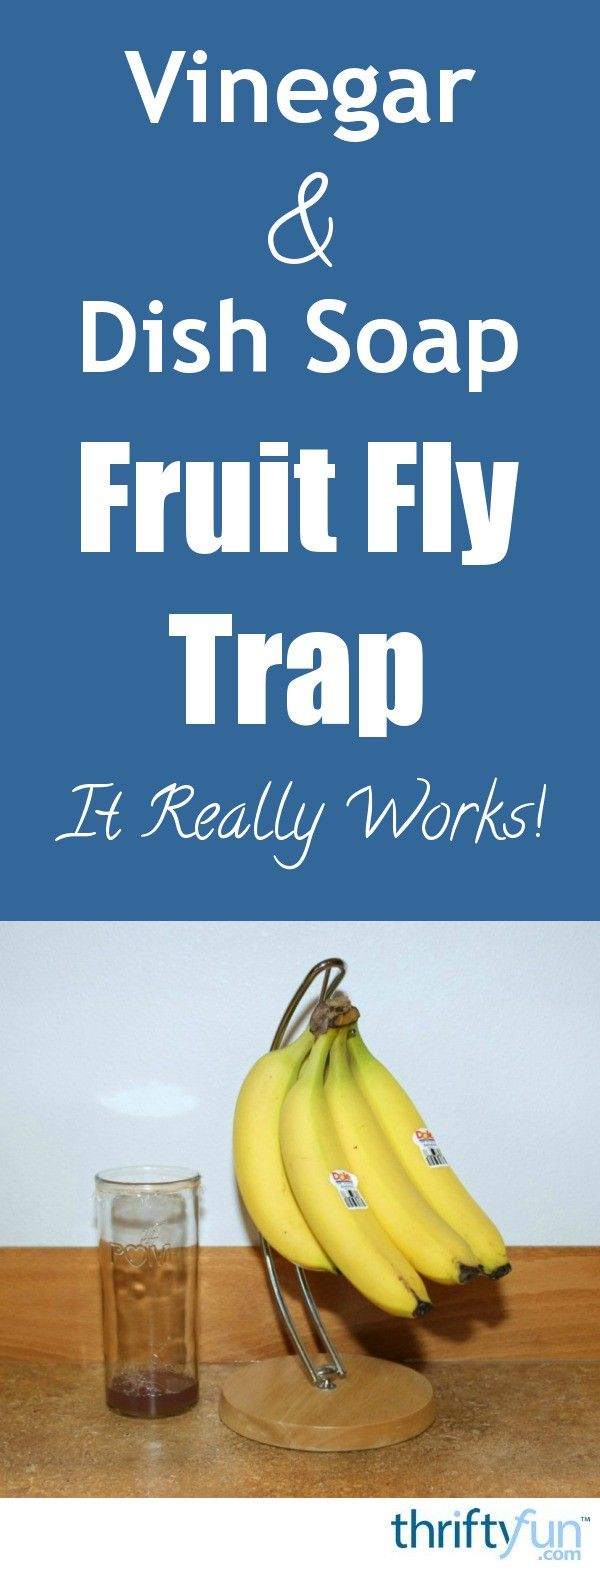 This is a guide about vinegar and dish soap fruit fly trap. A simple effective fruit fly trap can be made with apple cider vinegar and a few drops of dish soap.